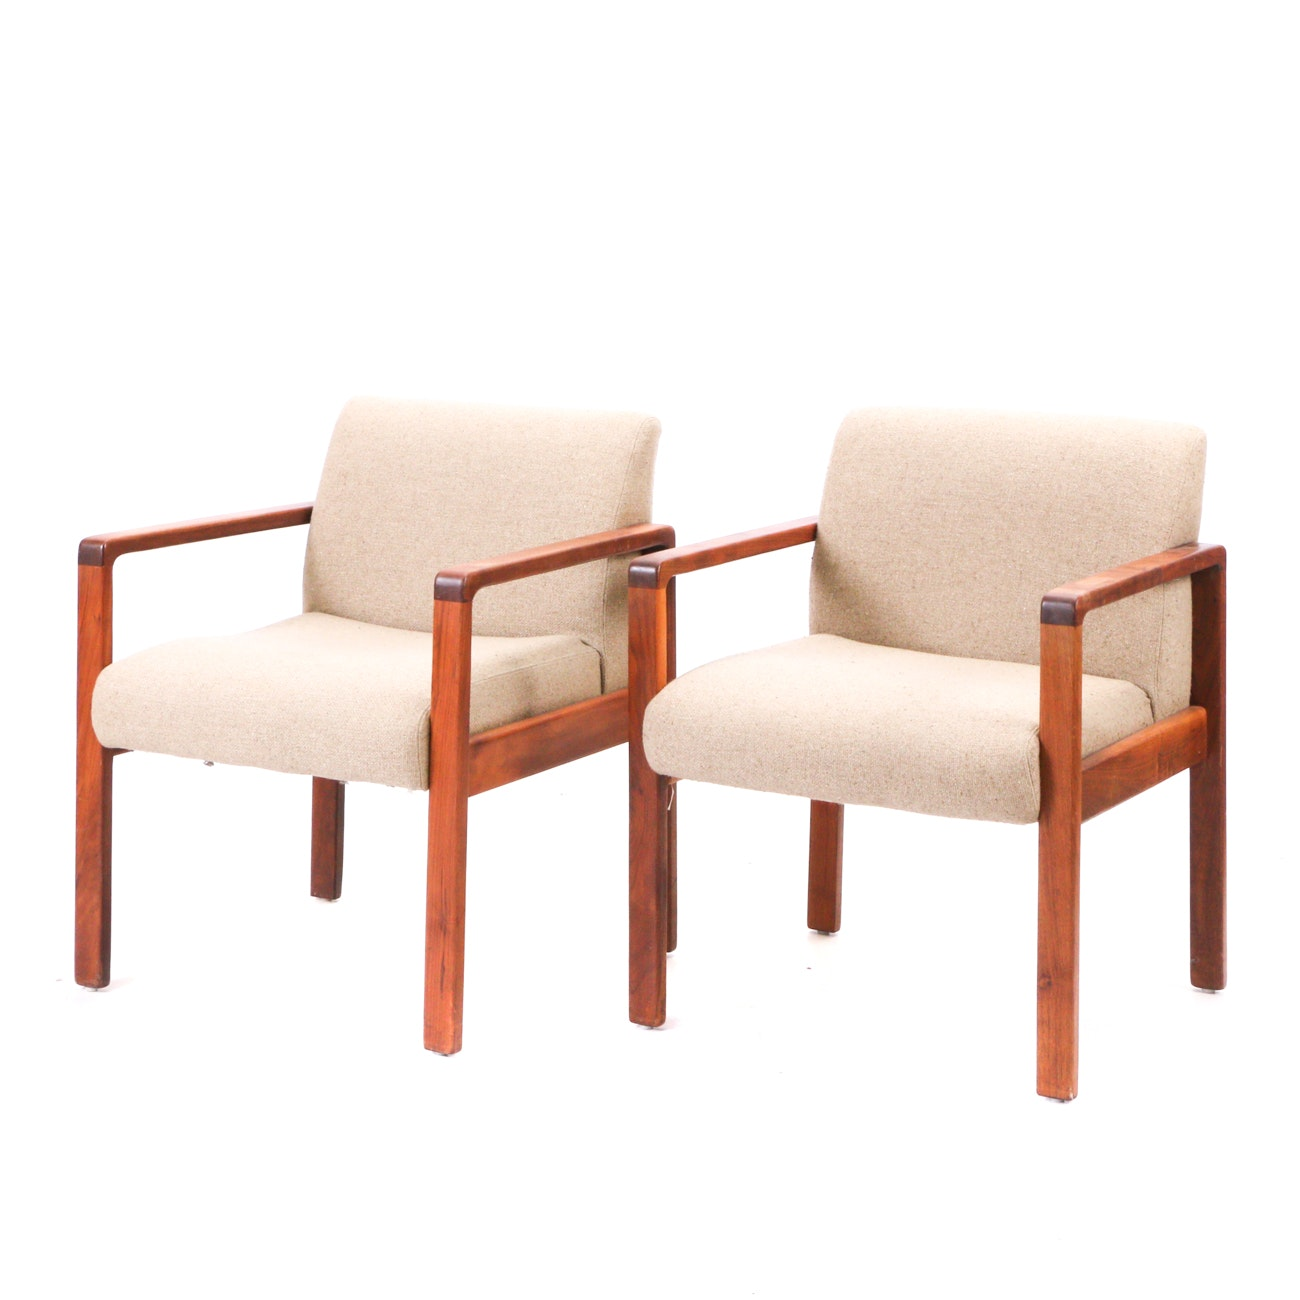 Pair of Mid Century Modern Armchairs